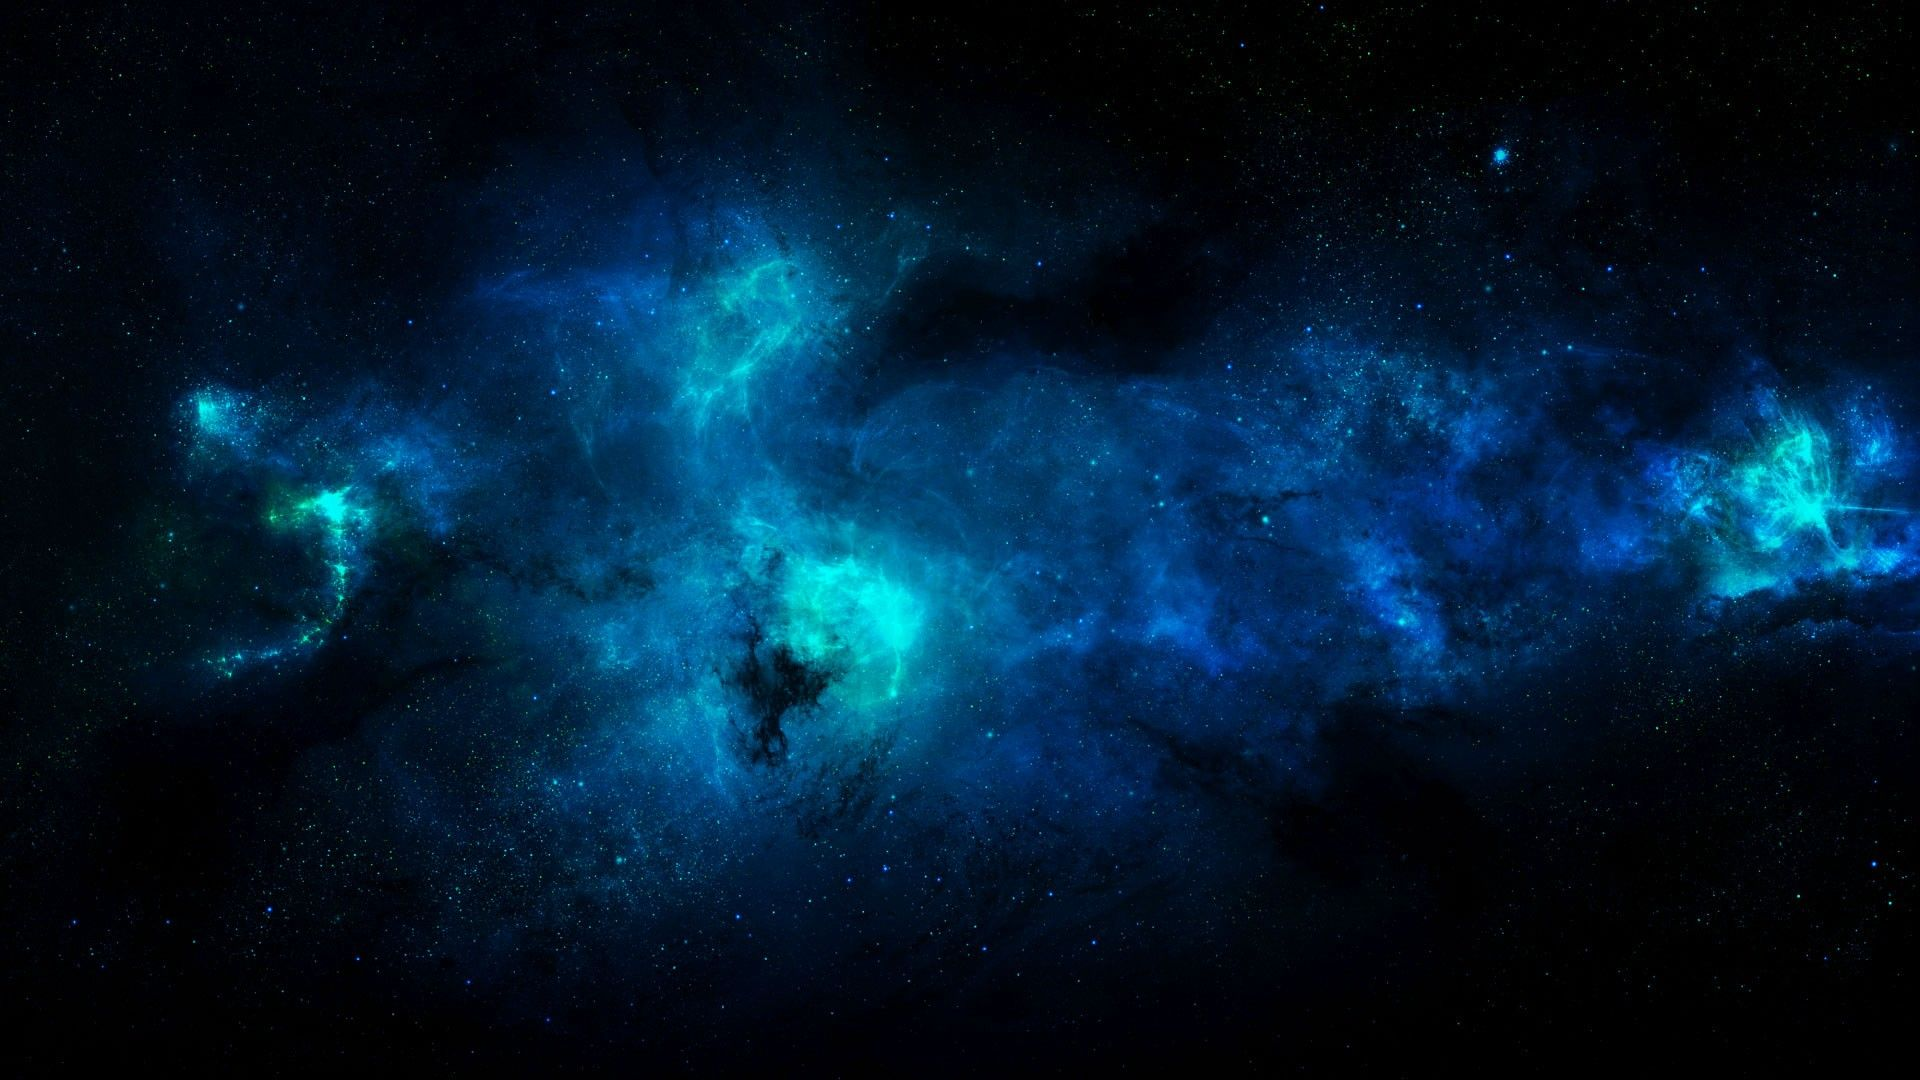 575 Wallpapers All 1080p No Watermarks Nebula Wallpaper Blue